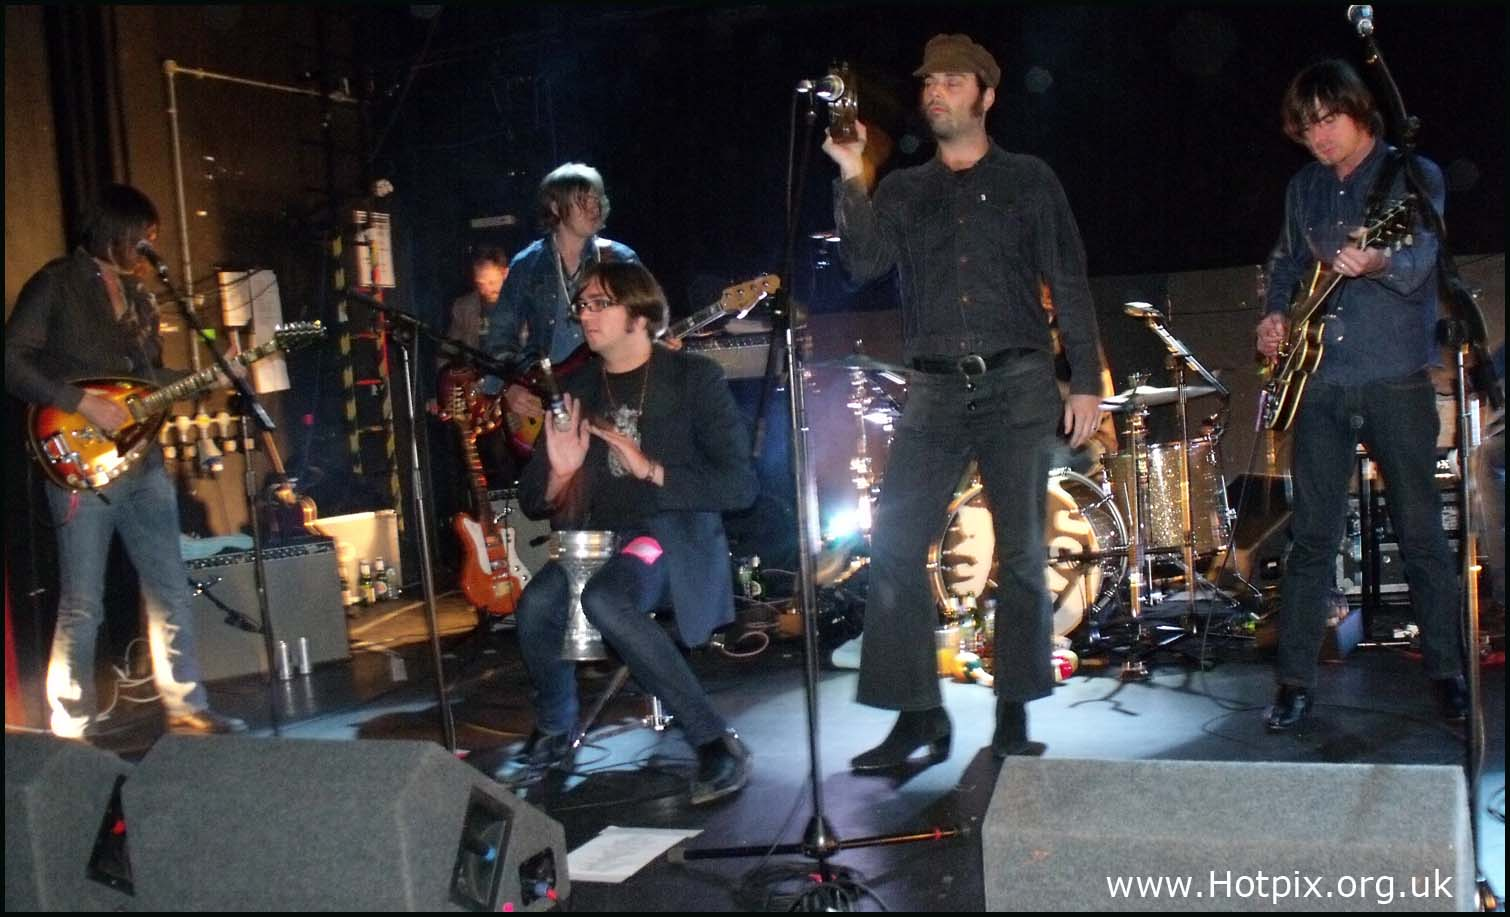 BJM,Academy,Manchester,music,band,live,gig,gigs,stage,show,indie,hotpix!